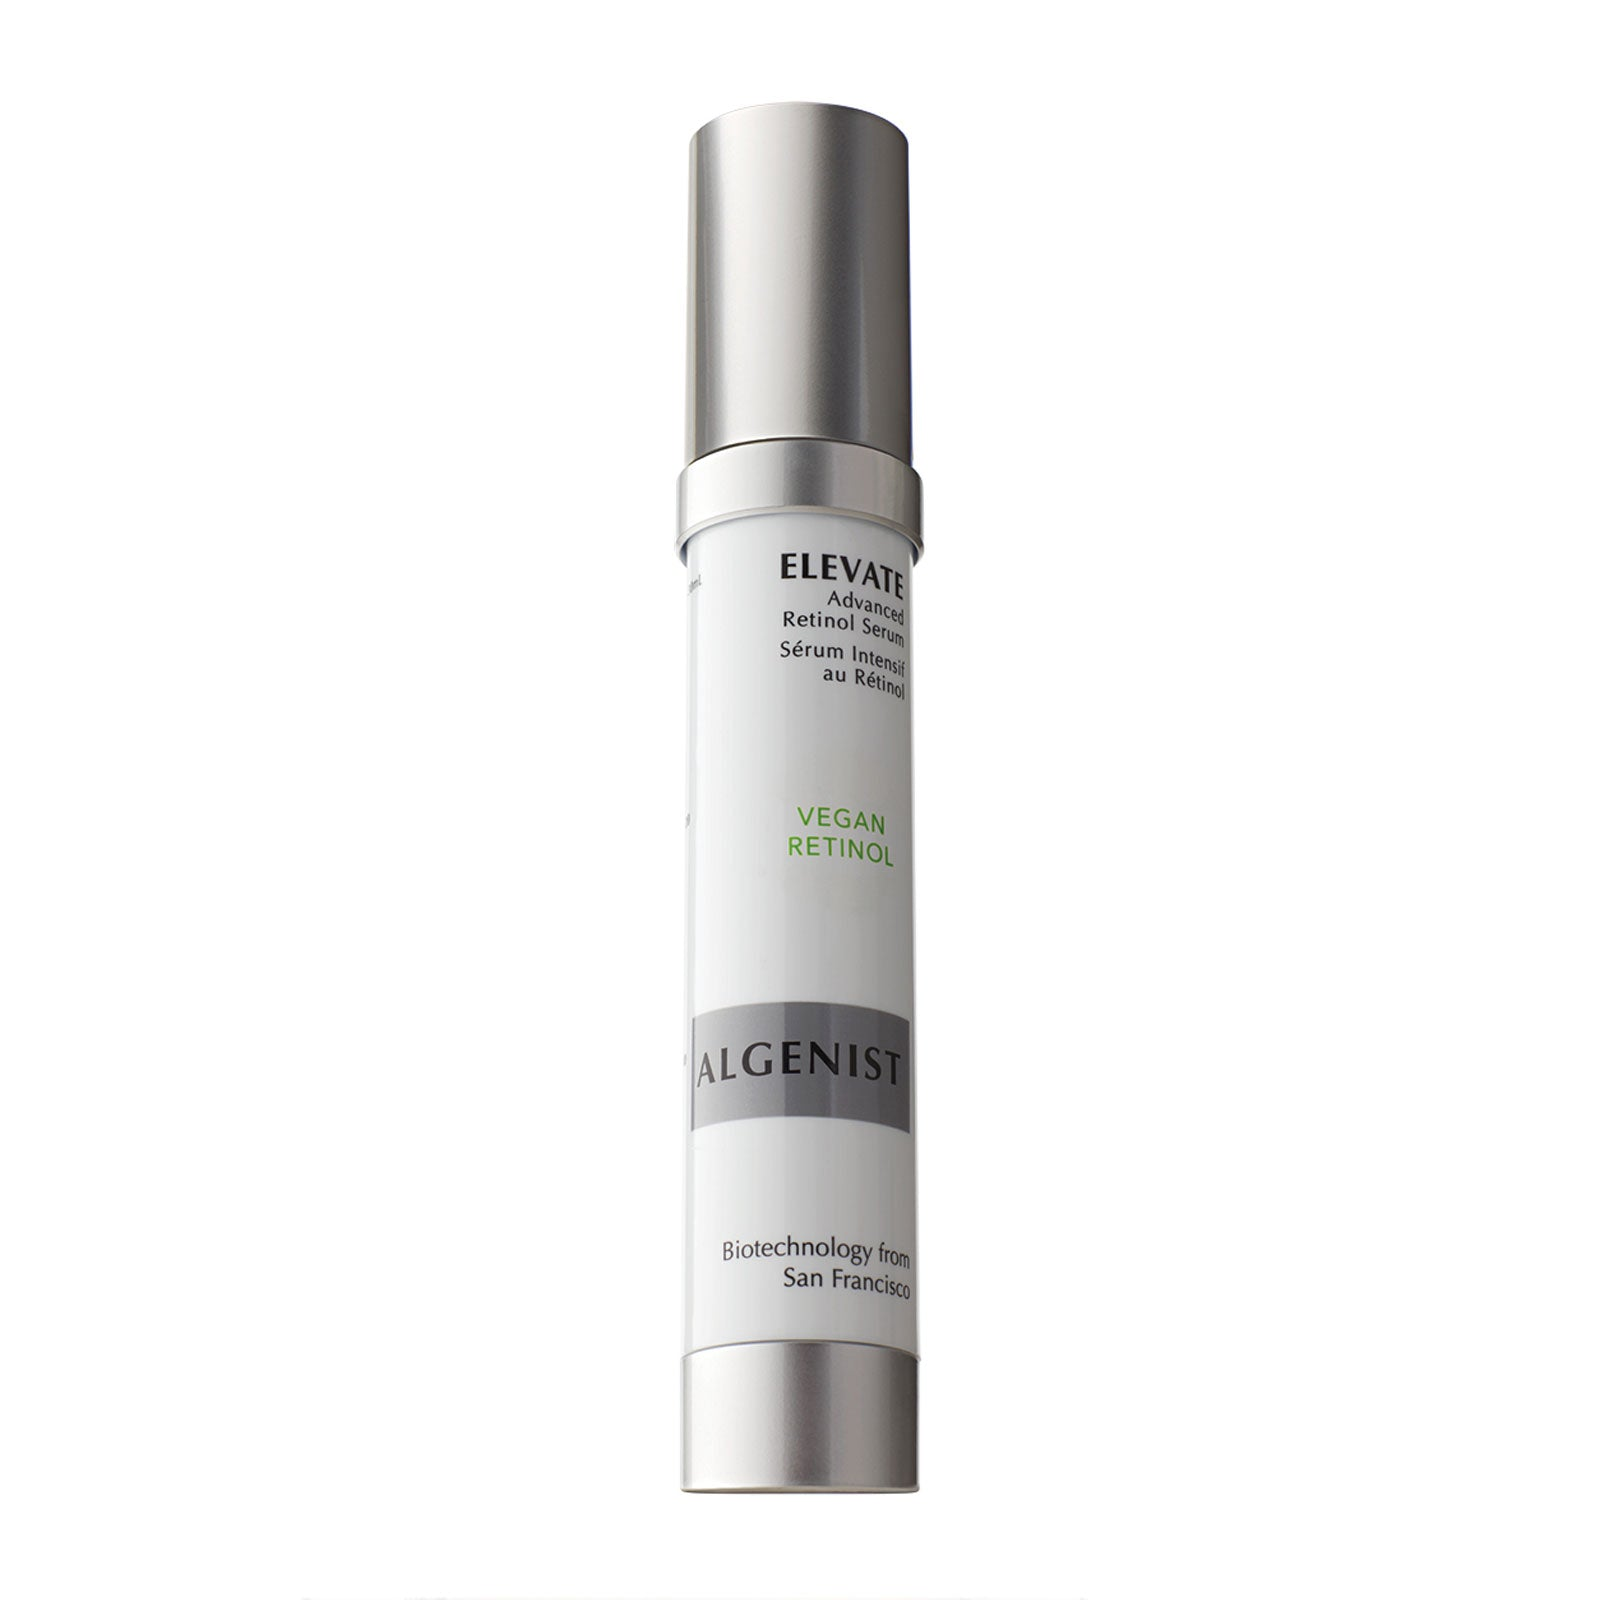 ALGENIST ELEVATE Advanced Retinol Serum 30ml